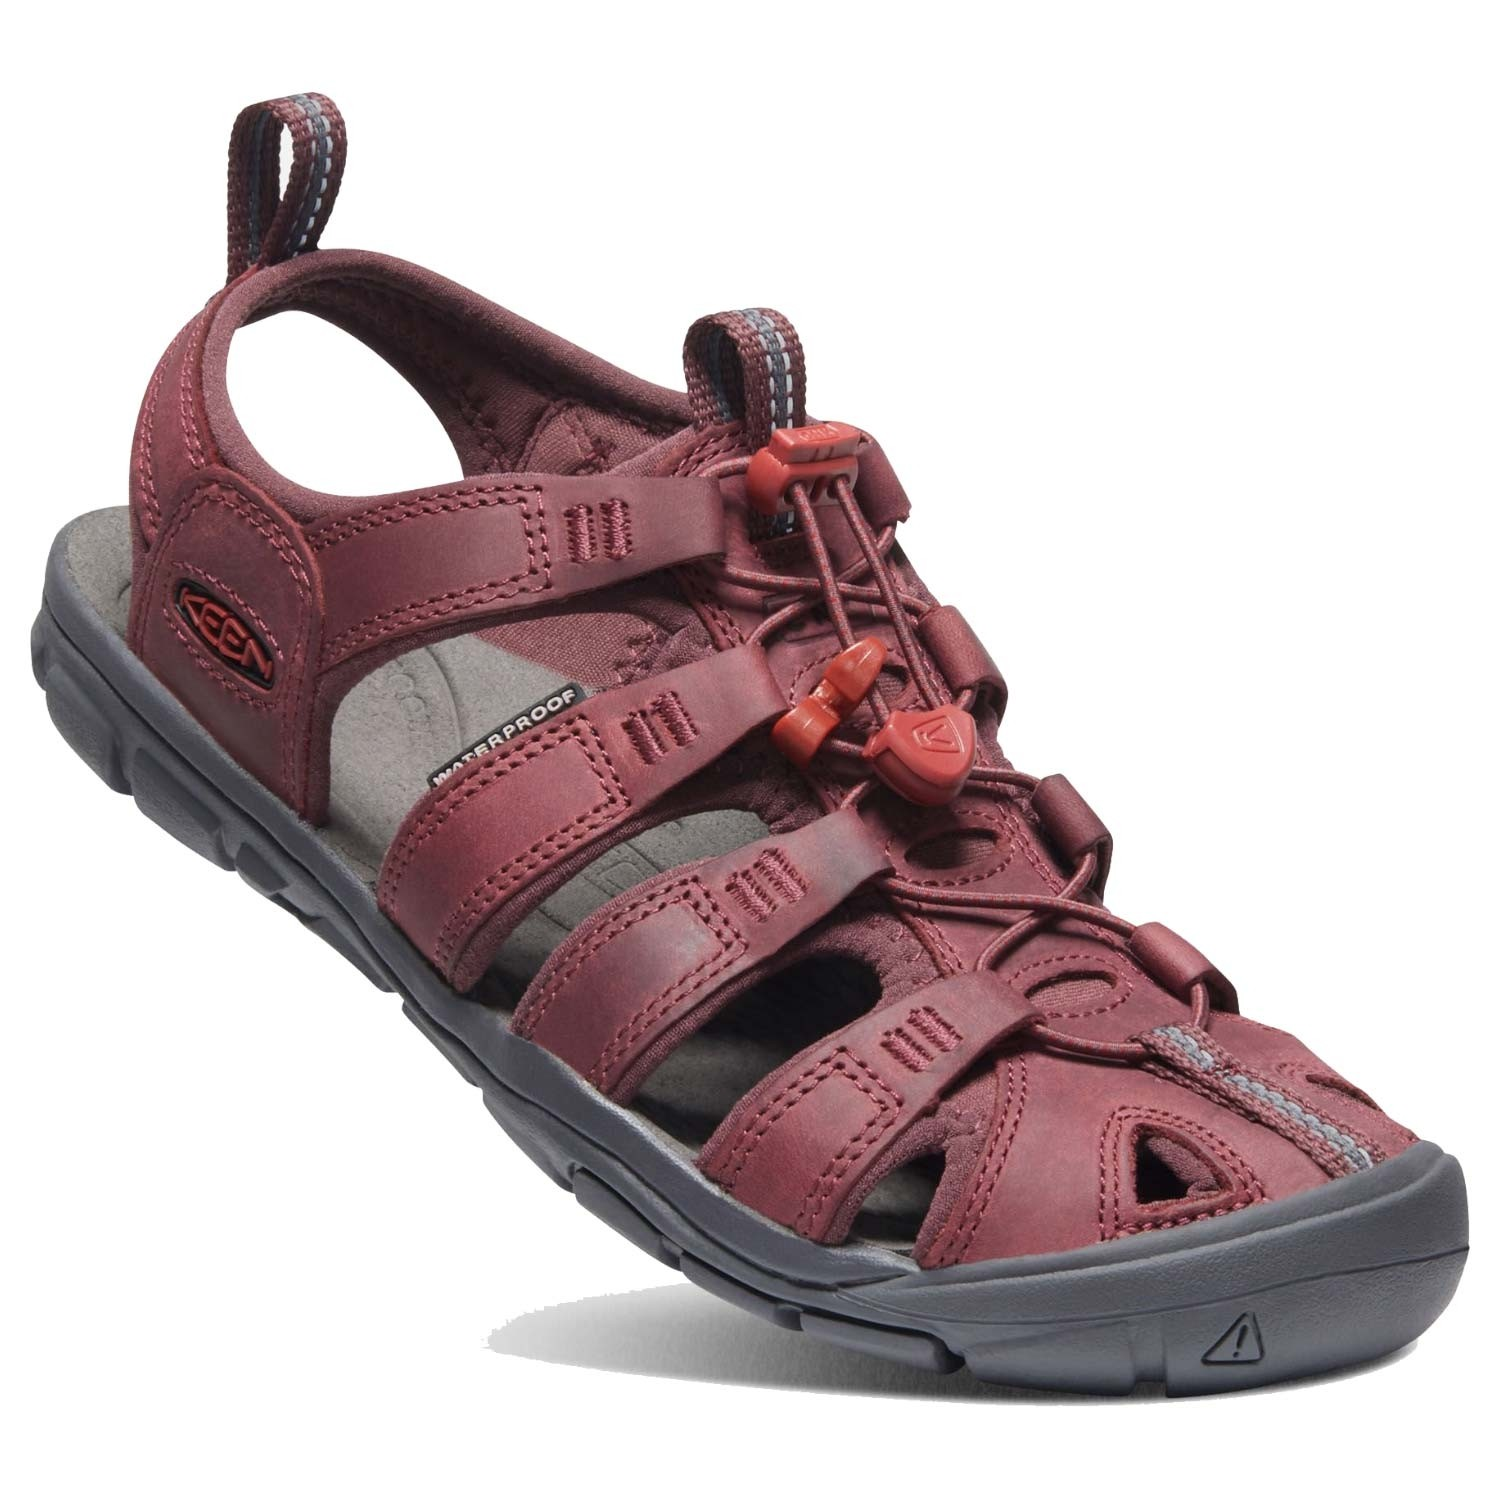 Keen Clearwater CNX Leather Sandal - Women's - Wine/Red Dahlia